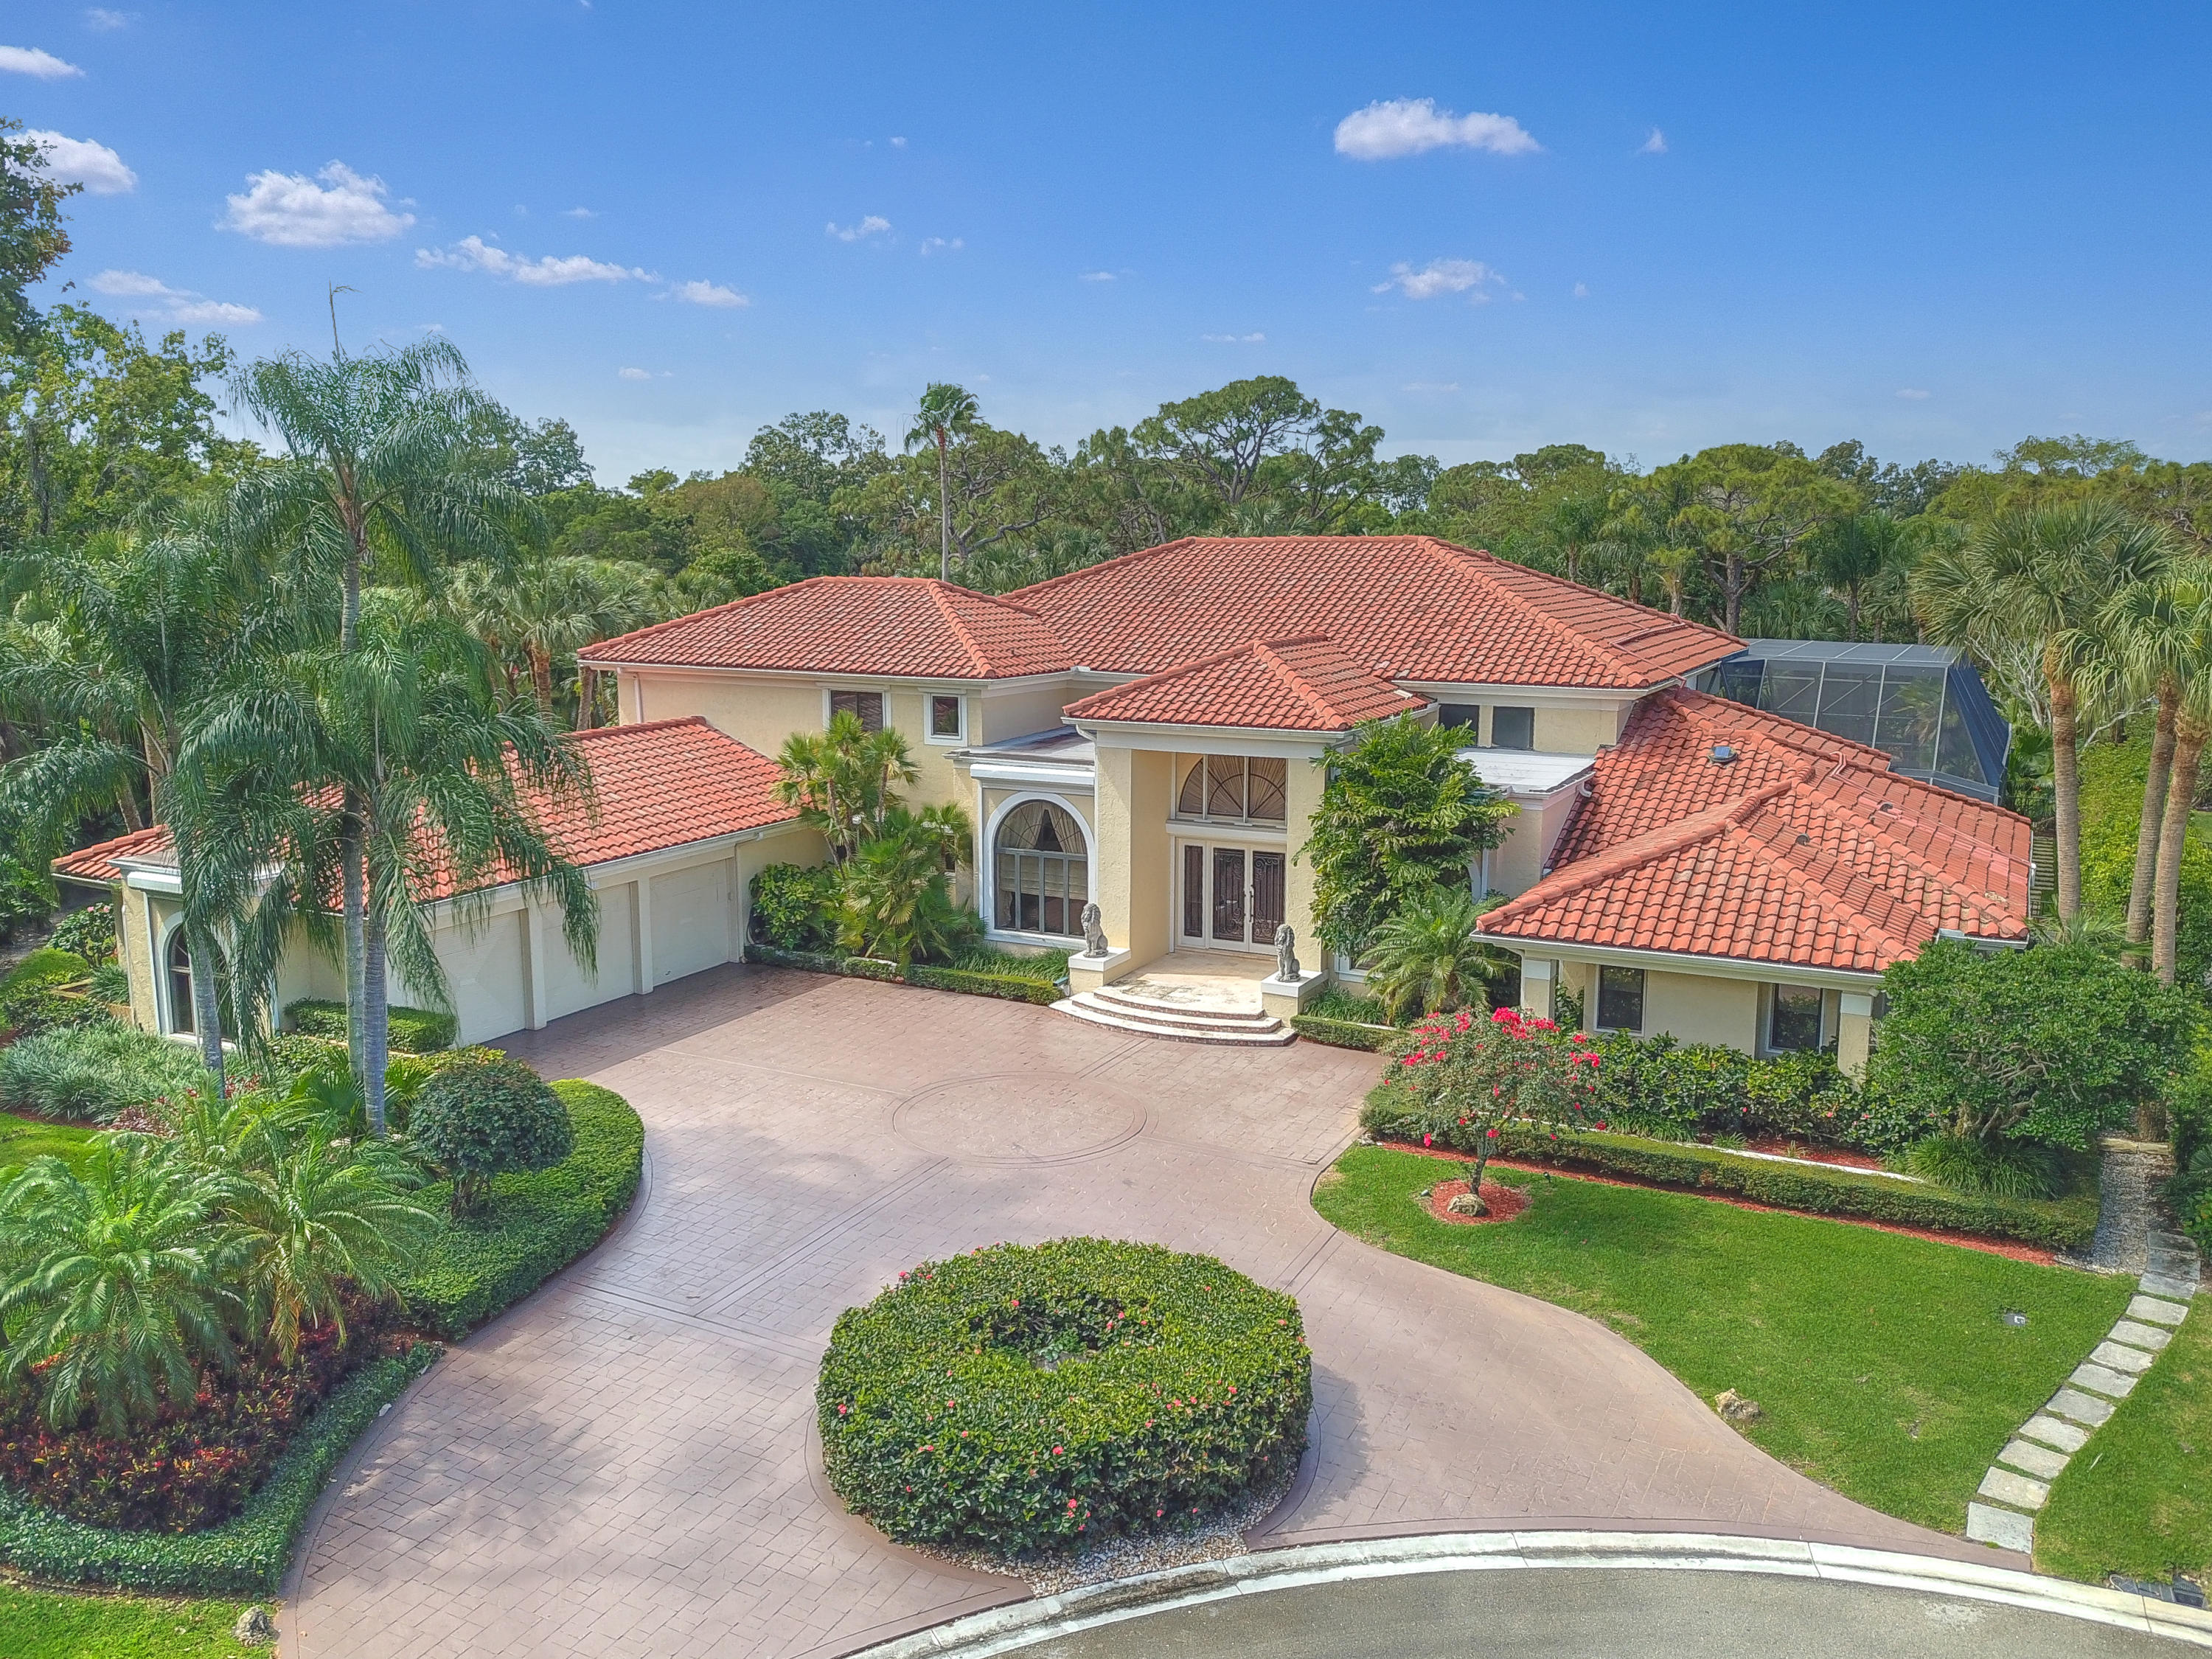 13101 Burgundy Drive, Palm Beach Gardens, Florida 33410, 5 Bedrooms Bedrooms, ,7.1 BathroomsBathrooms,A,Single family,Burgundy,RX-10512510